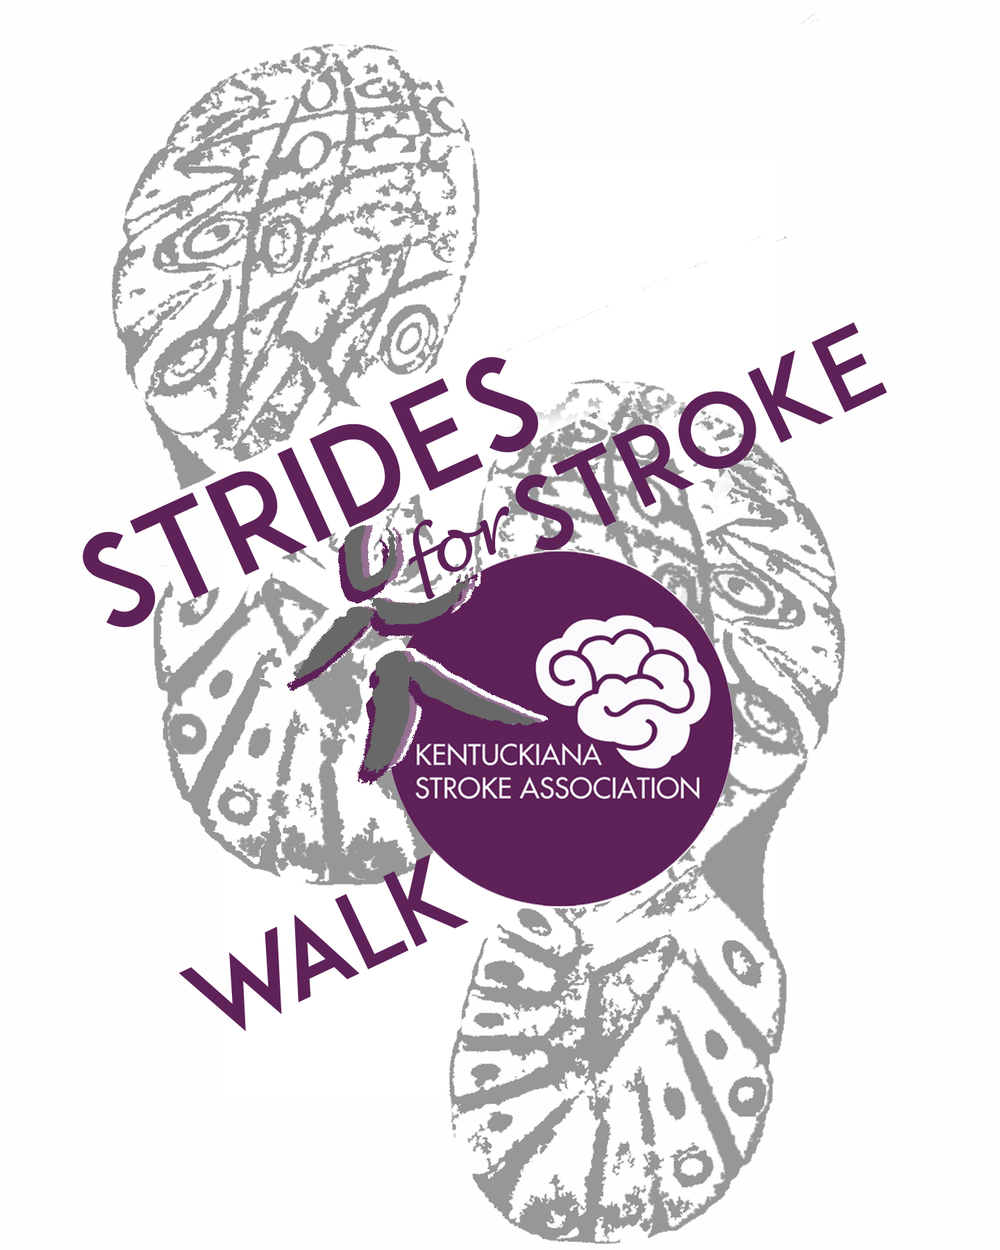 2018 Strides for Stroke Save the Date logo creation- new logo EDIT 2018 copy.png